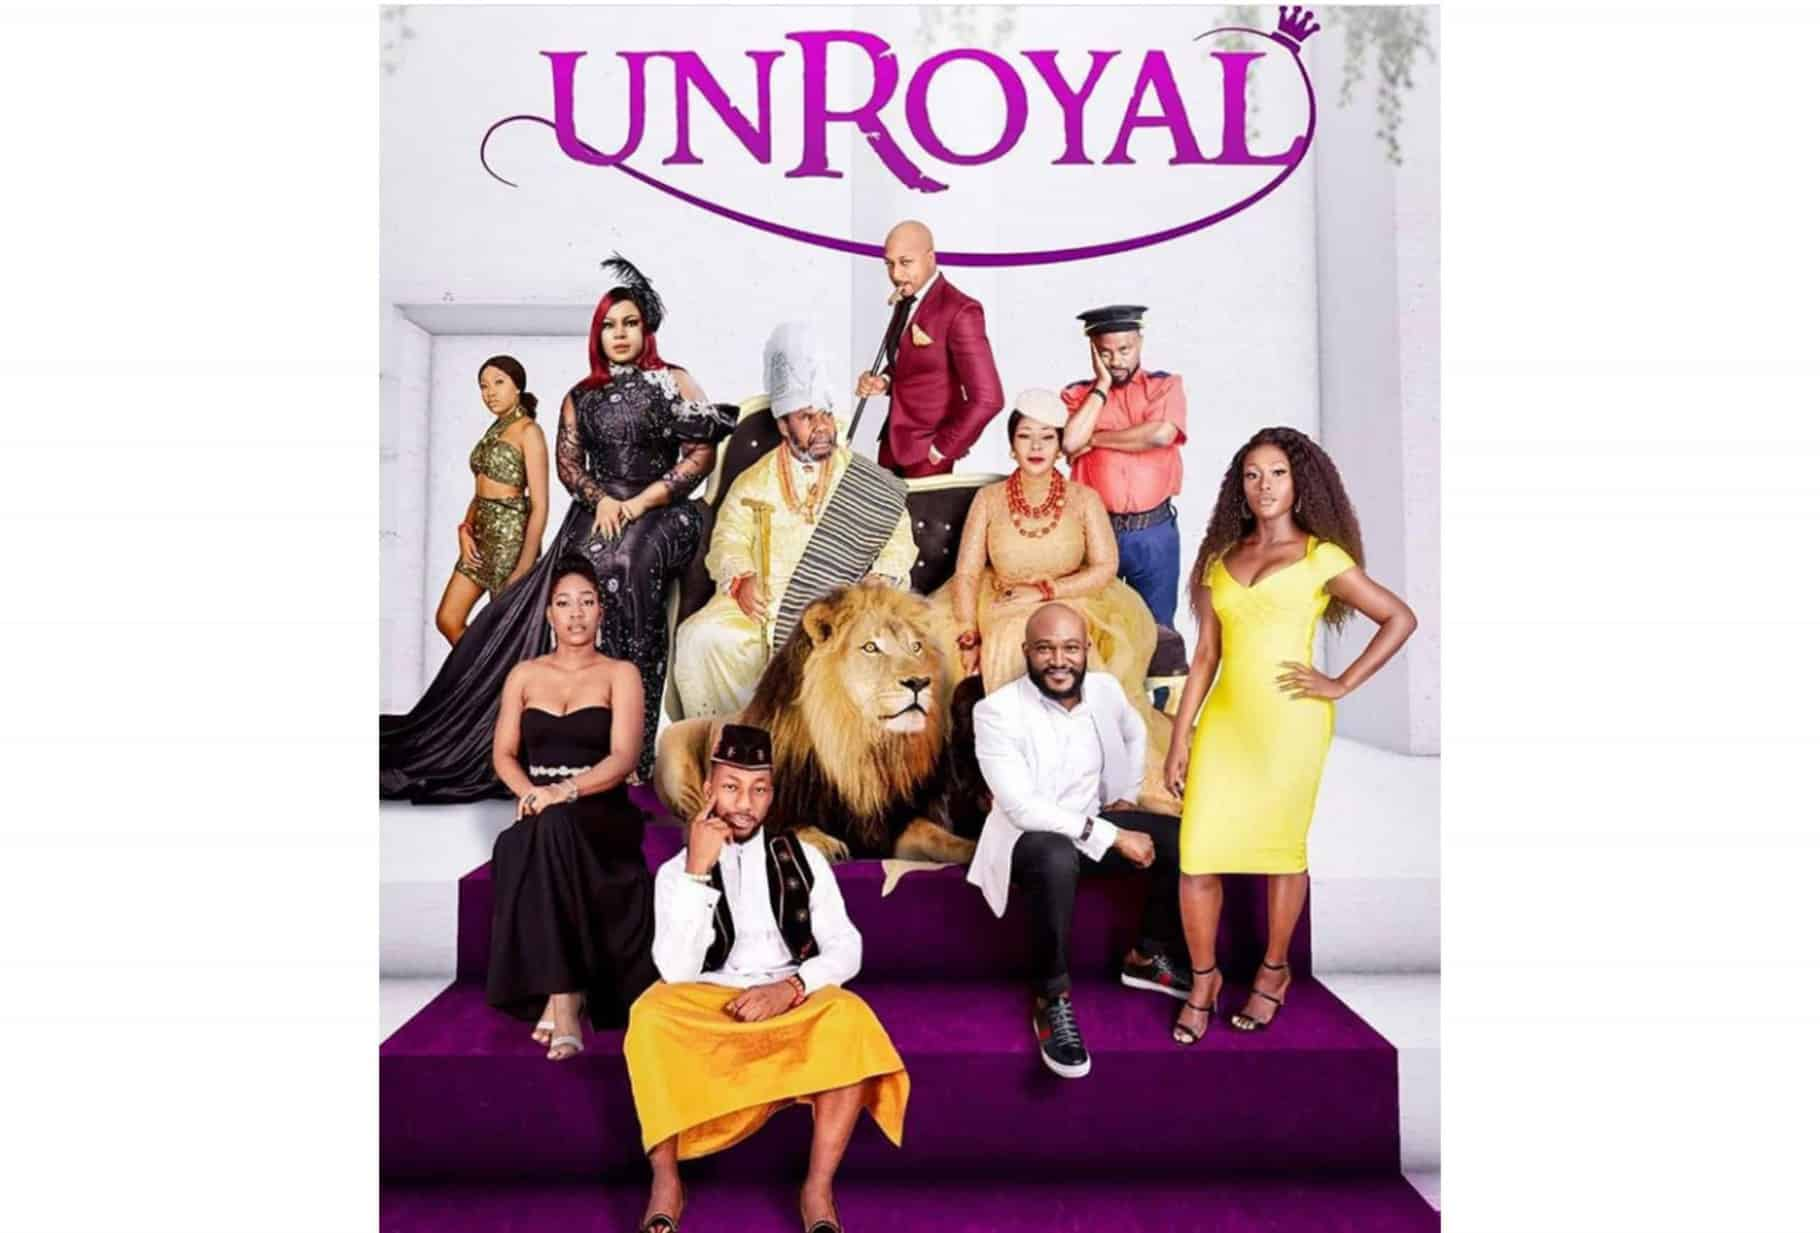 Unroyal (Movie Review)